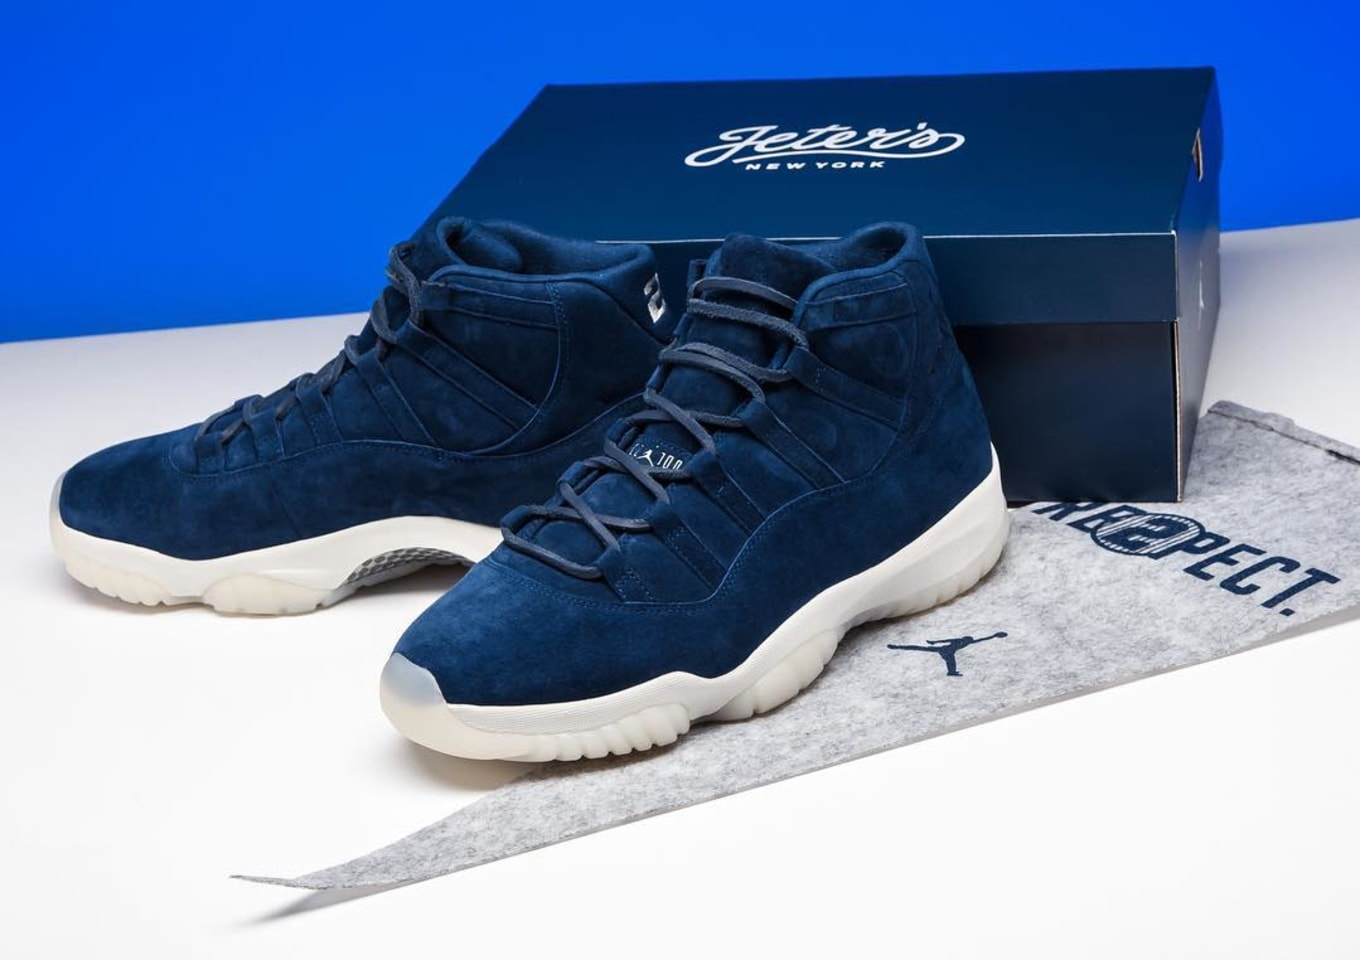 41e803724b3 Derek Jeter Air Jordan 11 XI Navy Blue Suede $40,000 | Sole Collector